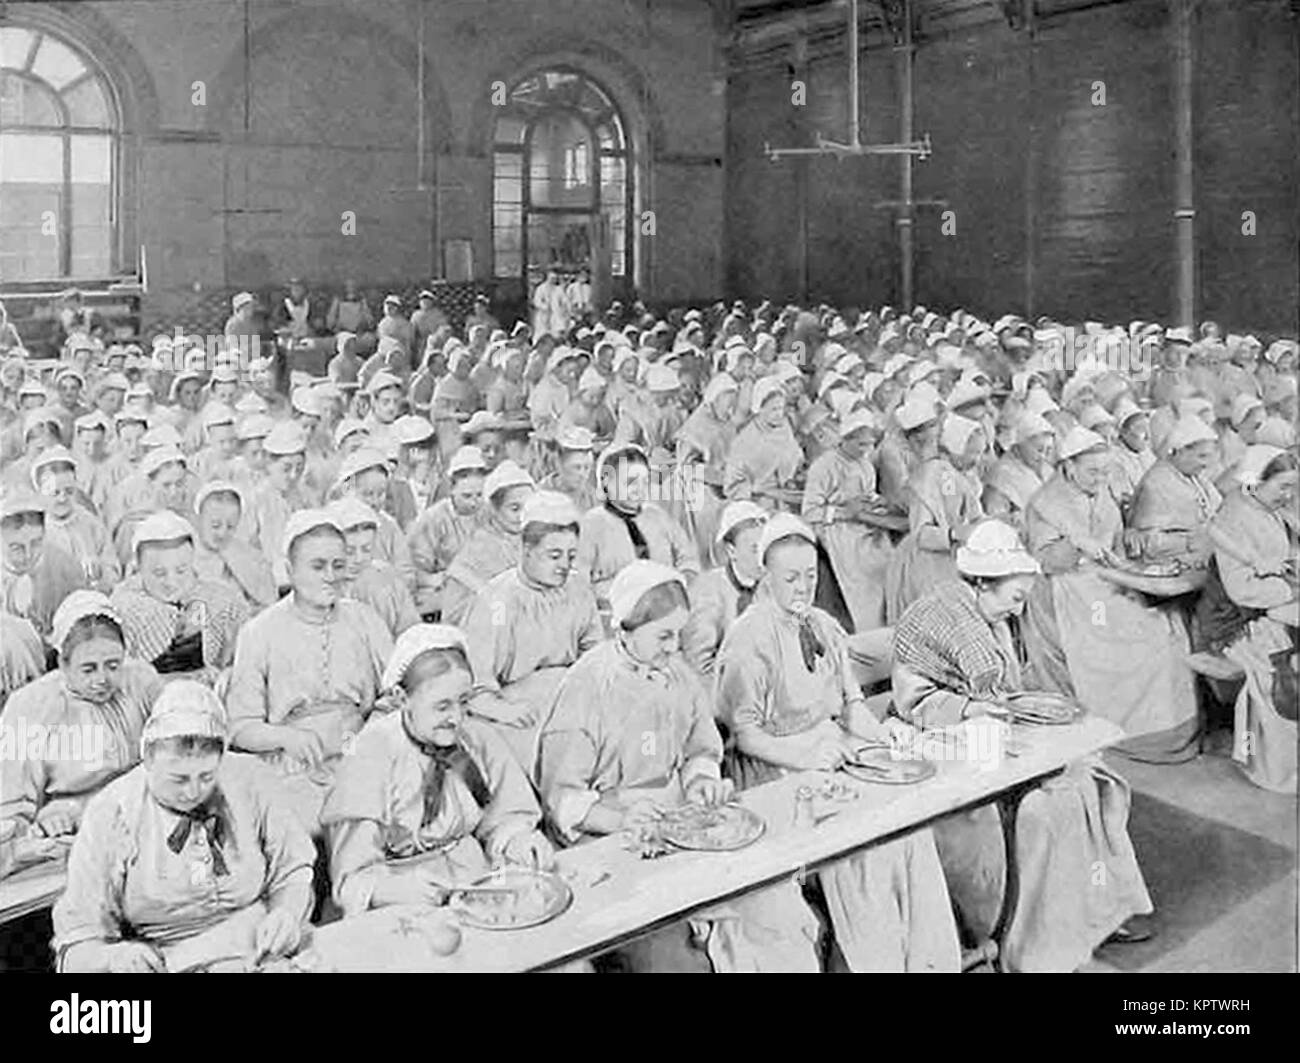 Dinnertime at St Pancras Workhouse, London - Stock Image